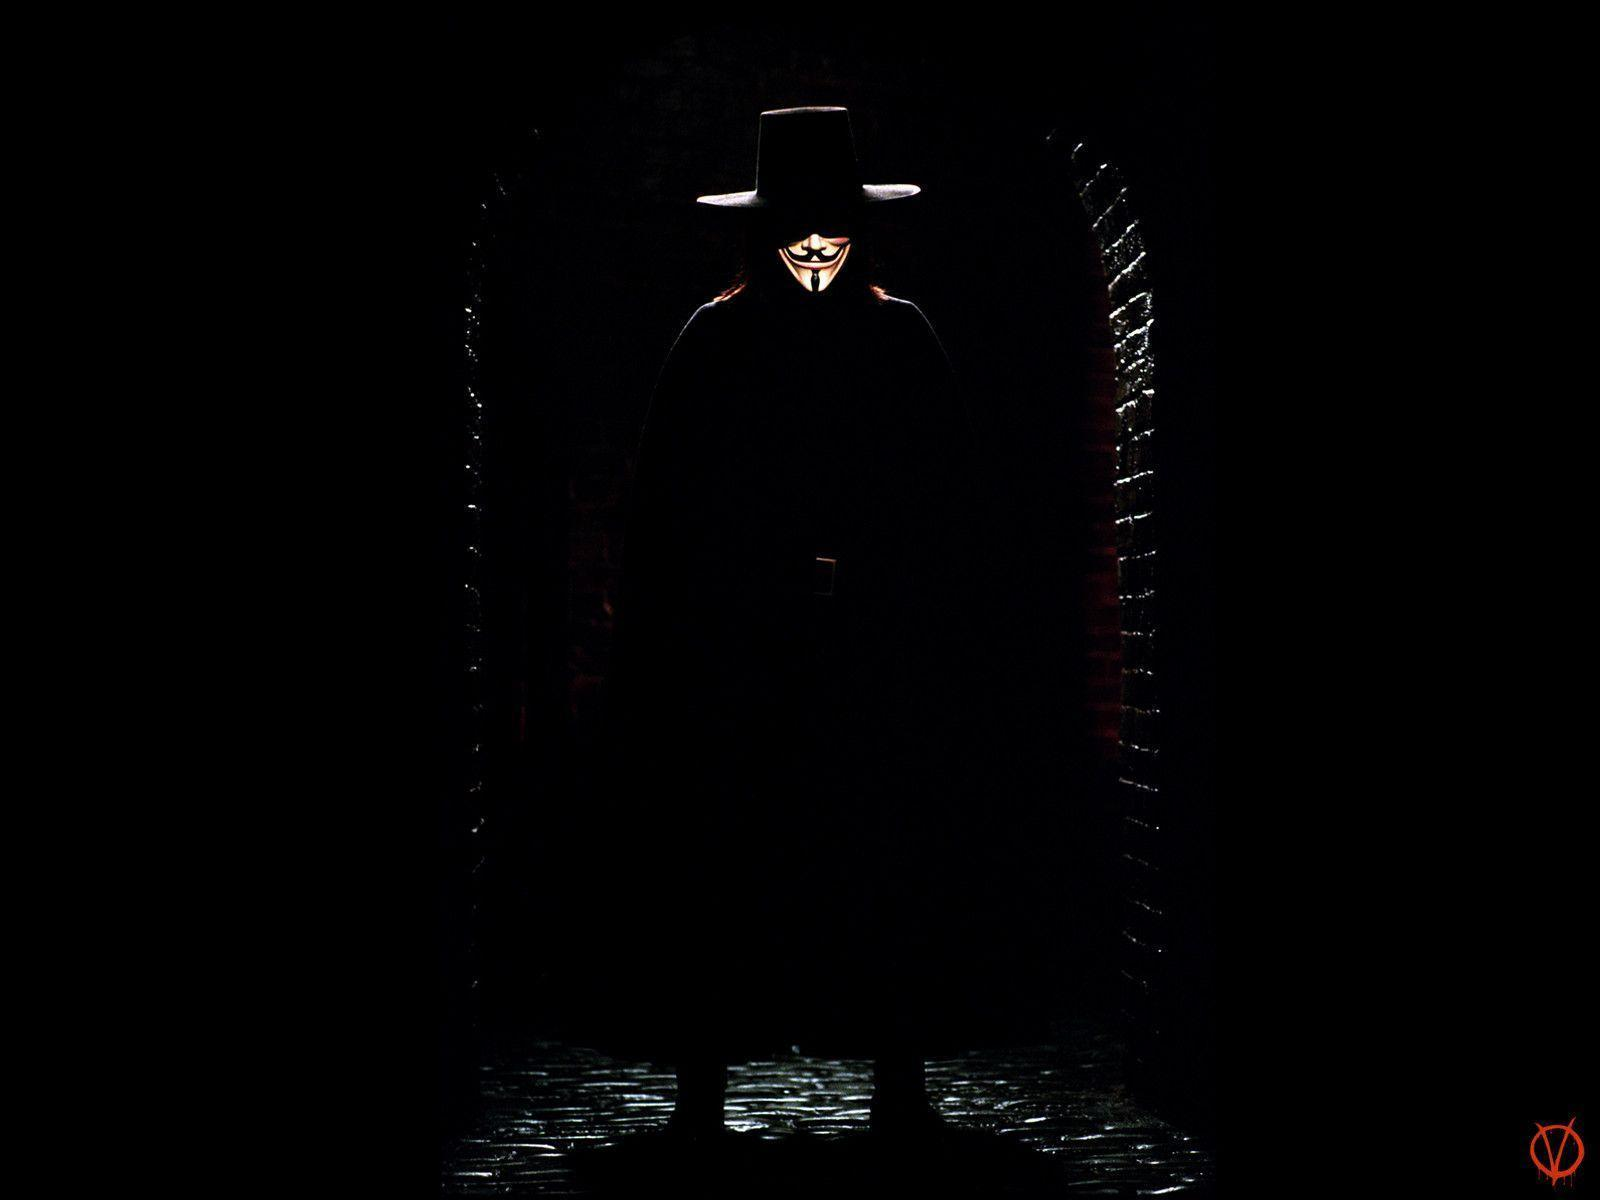 V for Vendetta TheWallpapers | Free Desktop Wallpapers for HD ...